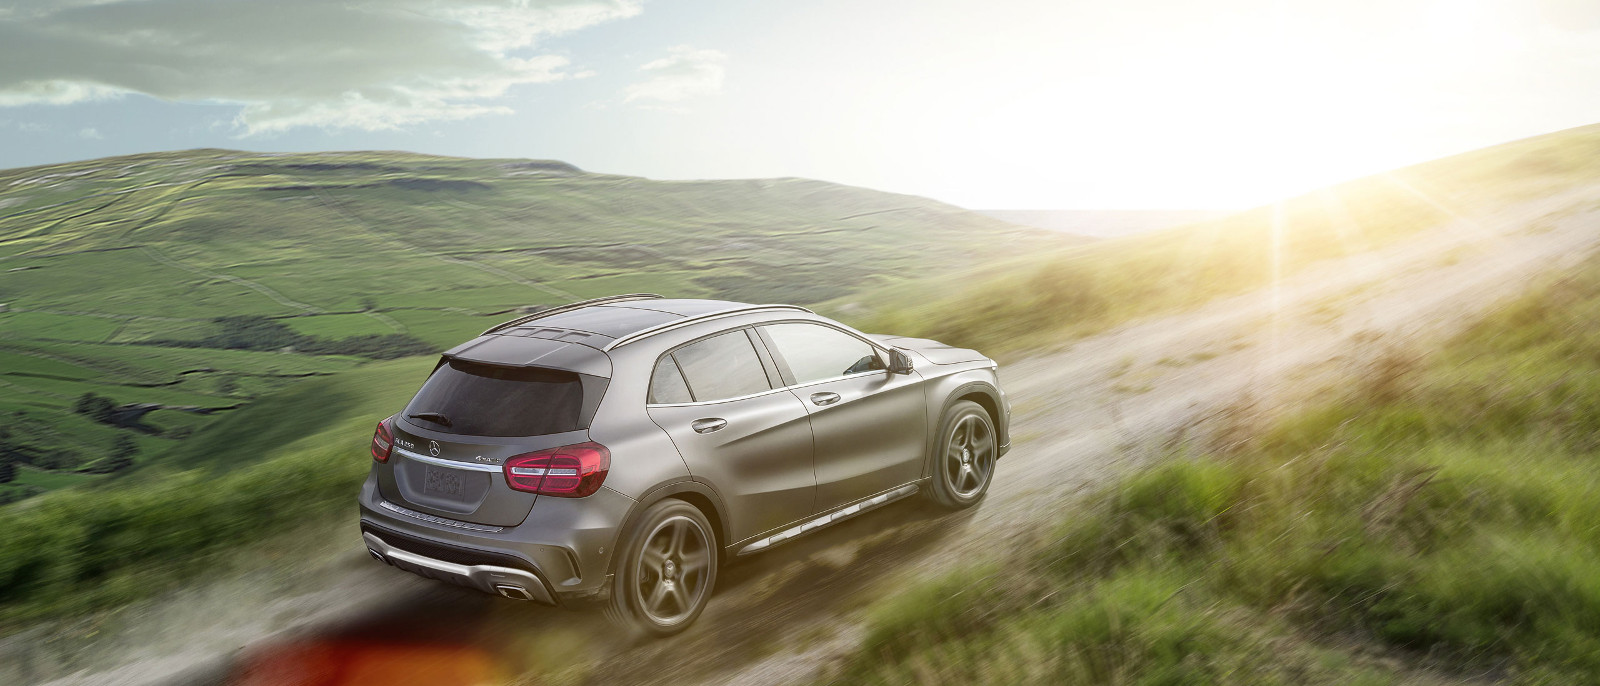 2015 Mercedes-Benz GLA Rear Exterior